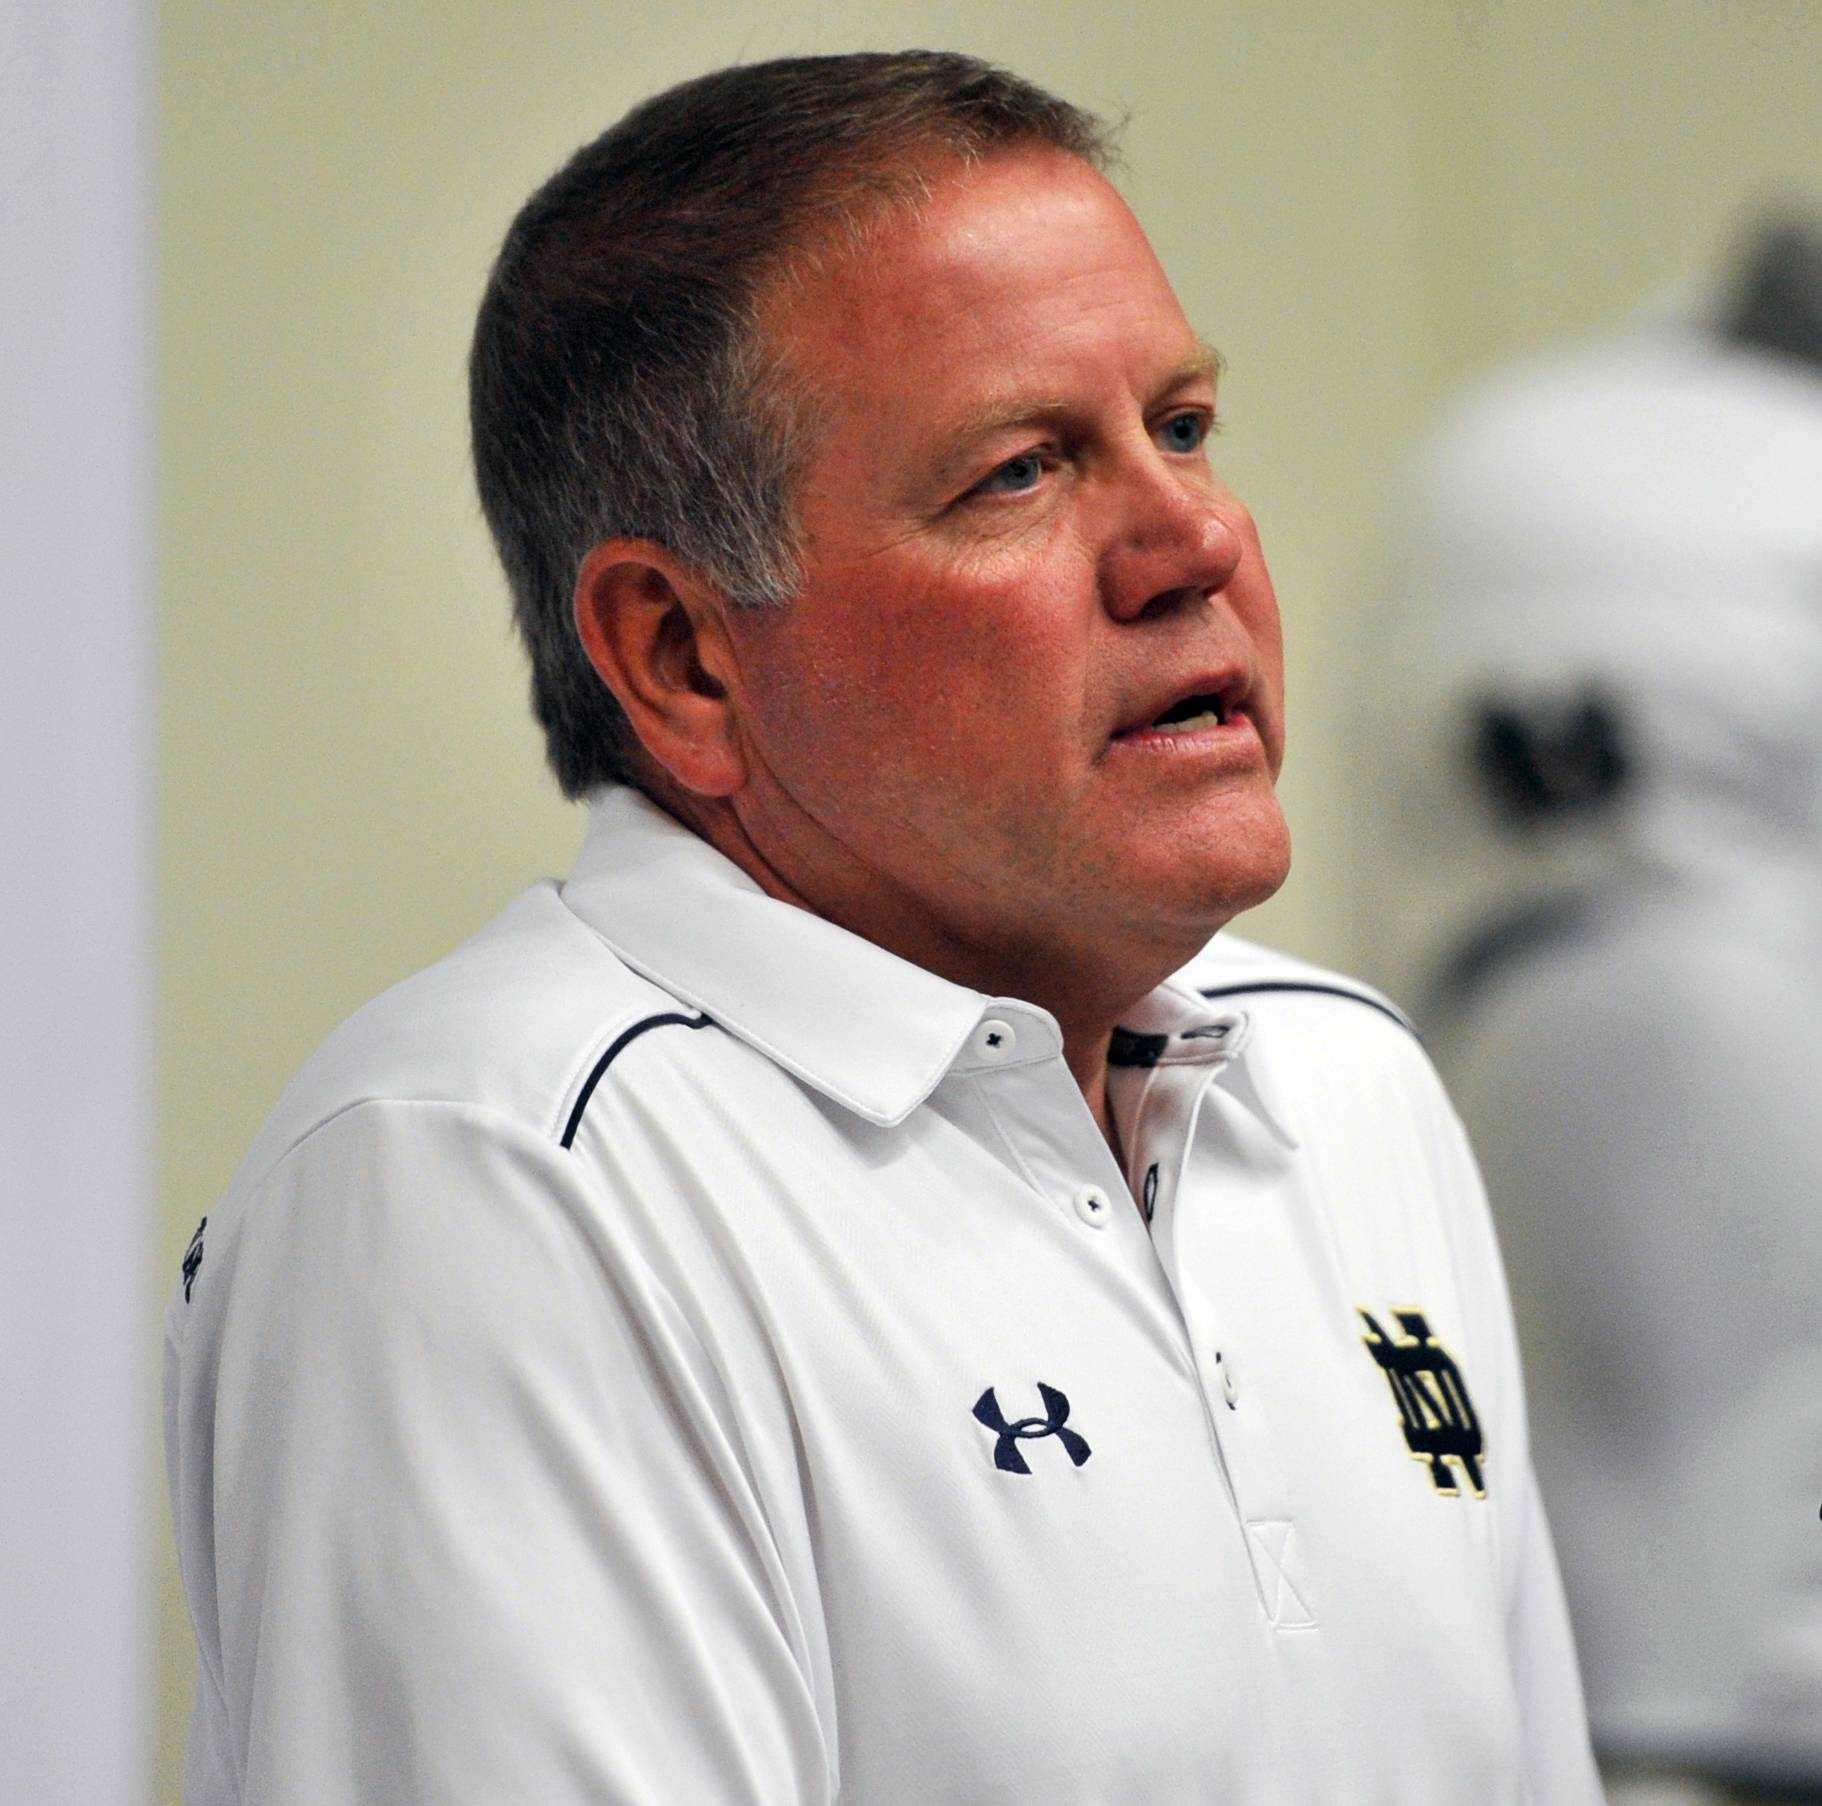 Notre Dame coach Brian Kelly talks to the media during media day for the NCAA college football team Tuesday Aug. 19, 2014,  in South Bend, Ind.